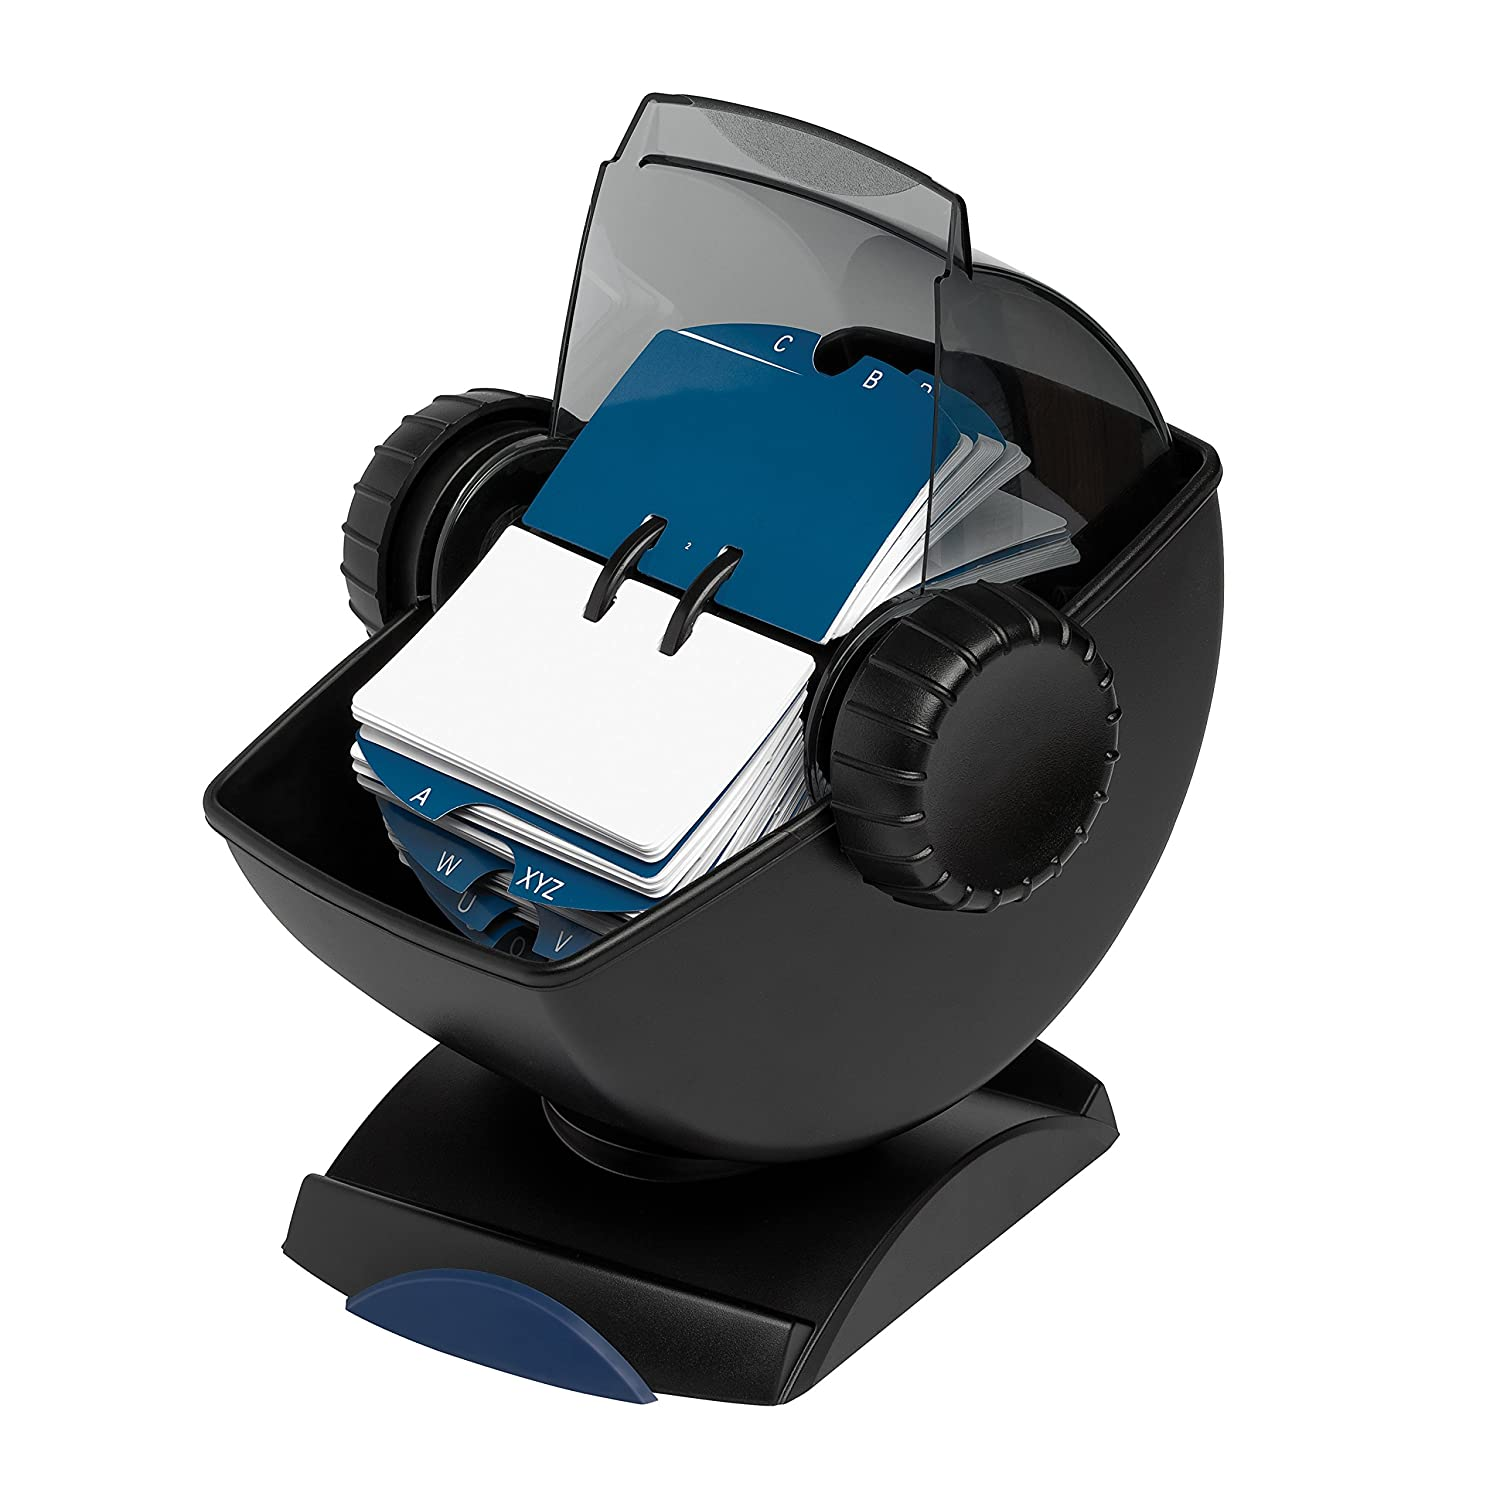 Amazon.com : Rolodex Rotary Business Card File with Swivel Base, 500 ...